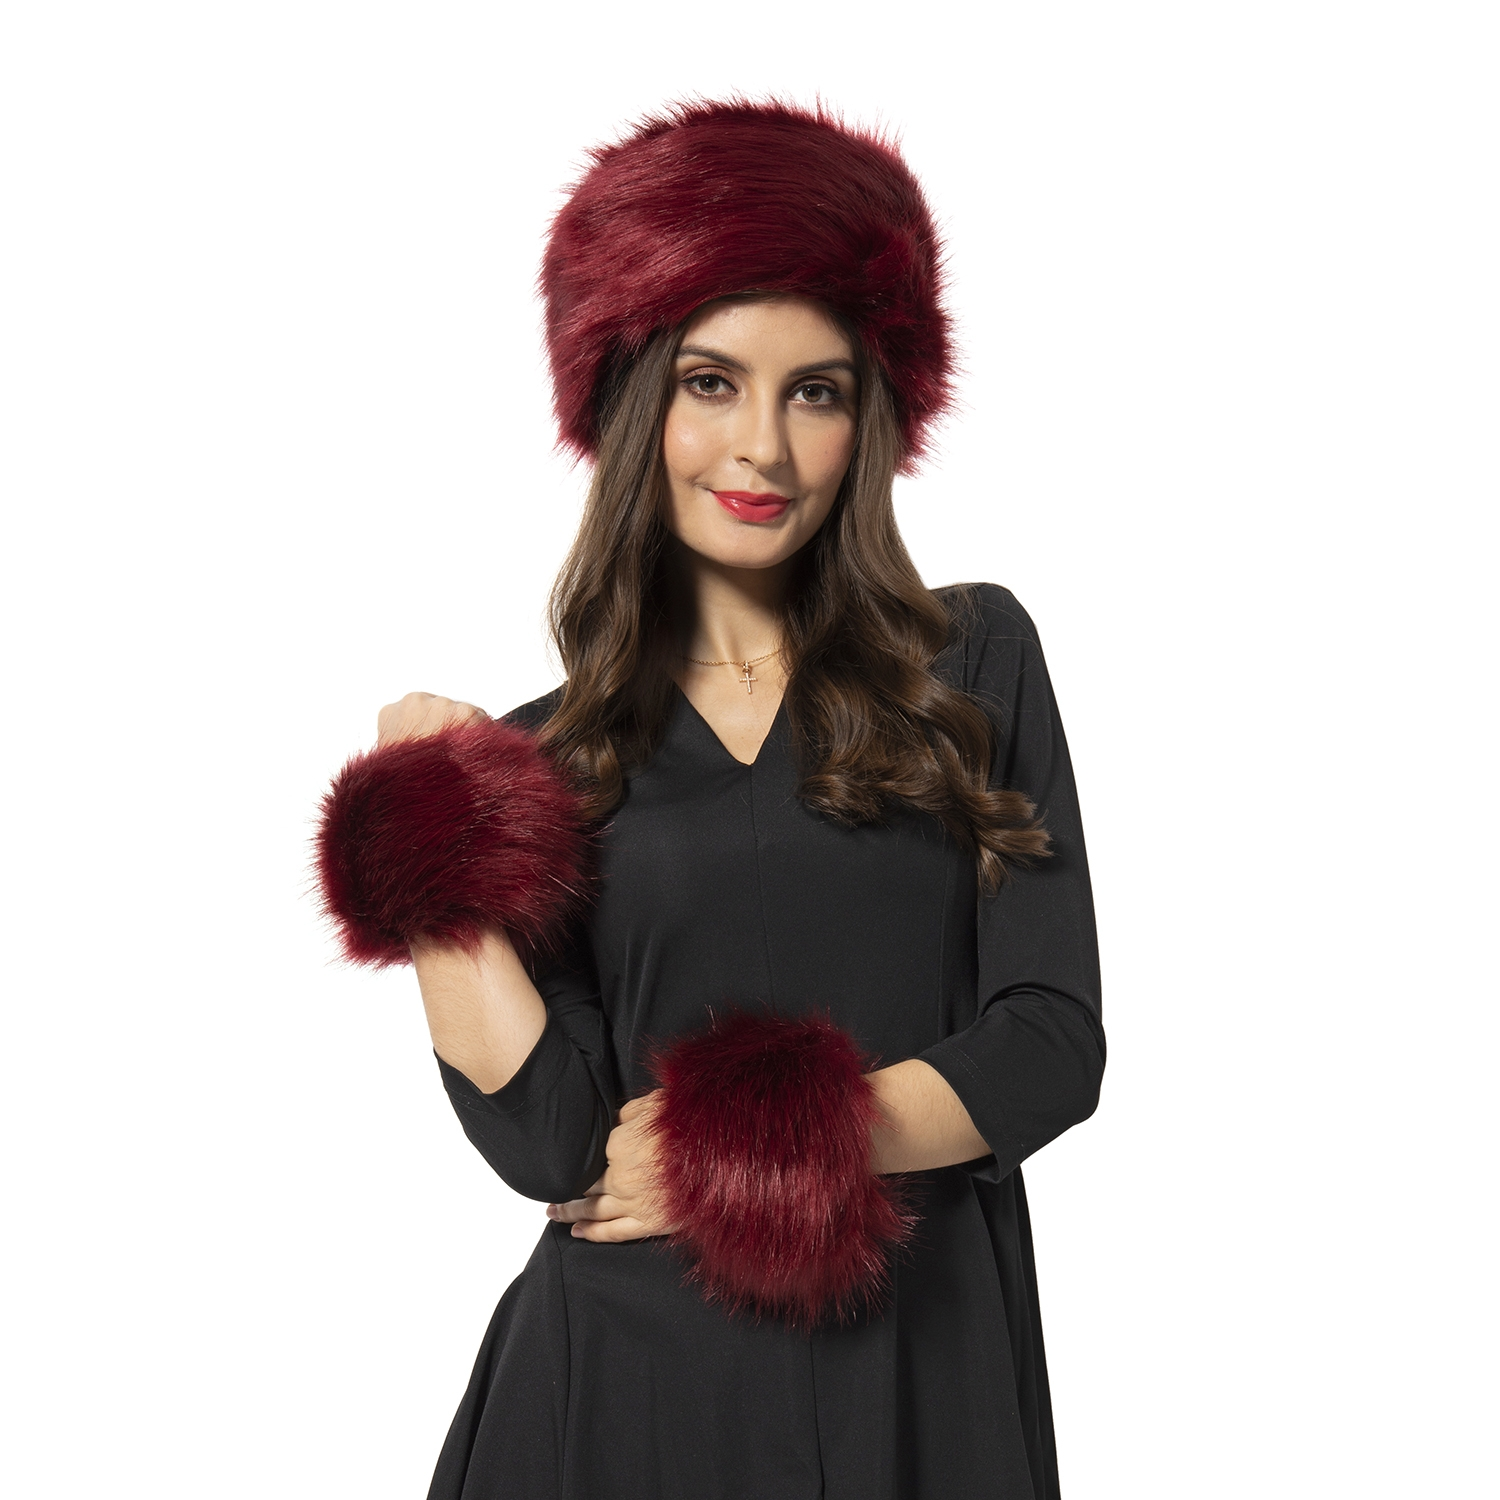 Maroon 100% Polyester Faux Fur Wrist Warmer Cuff (4 in) and Hat (11 in)